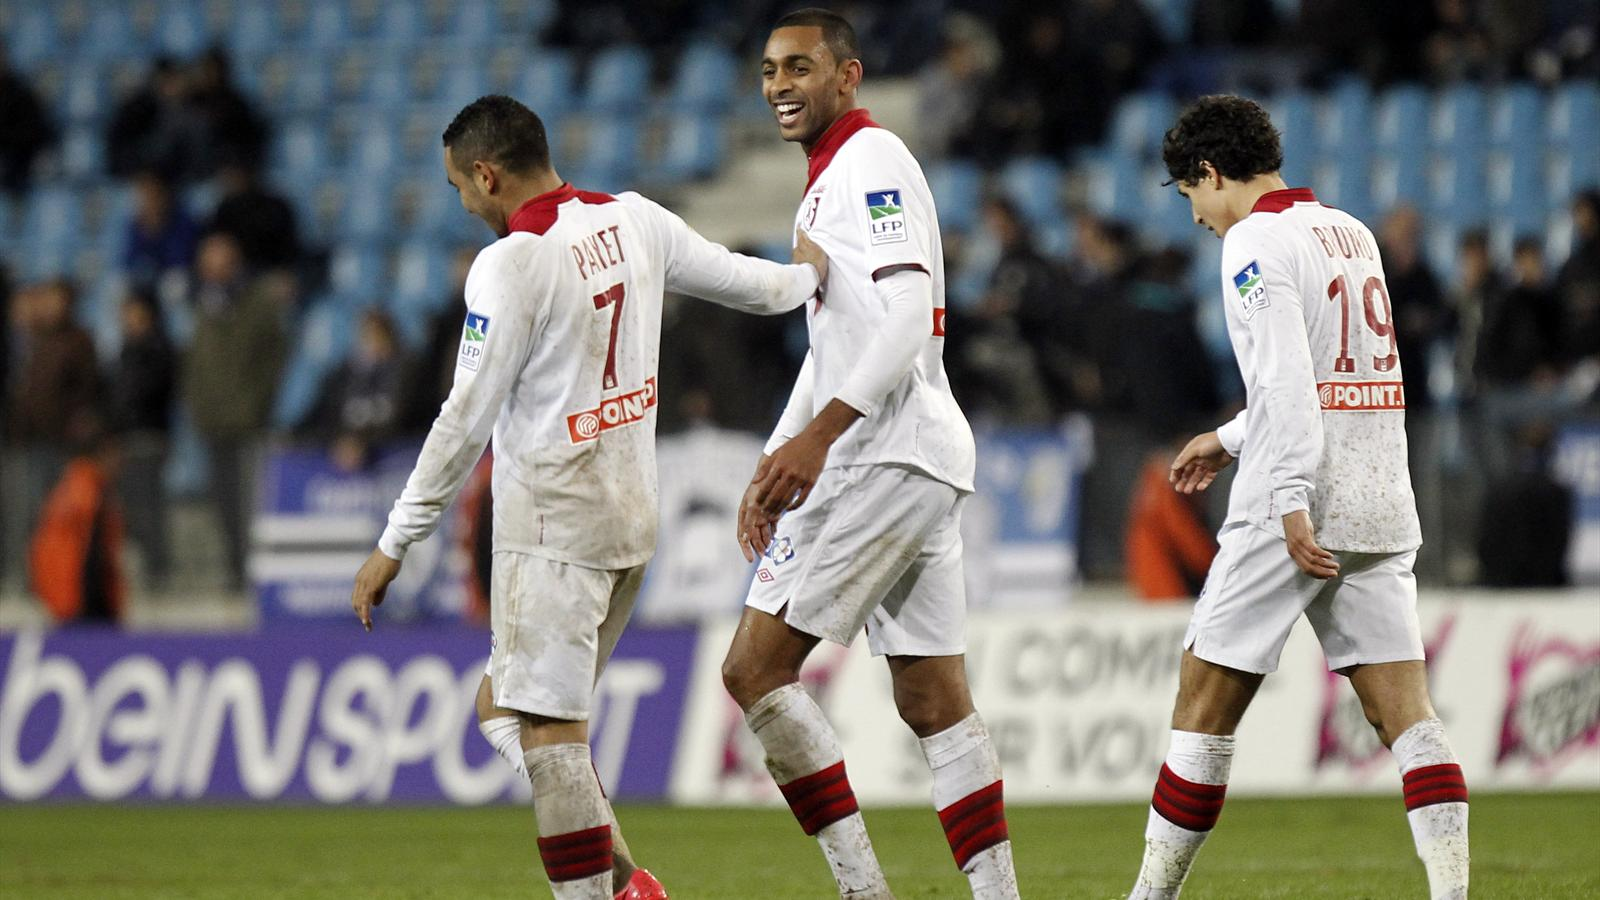 Bastia losc 0 3 lille se qualifie sans trembler coupe de la ligue 2012 2013 football - Coupe de la ligue 2013 14 ...